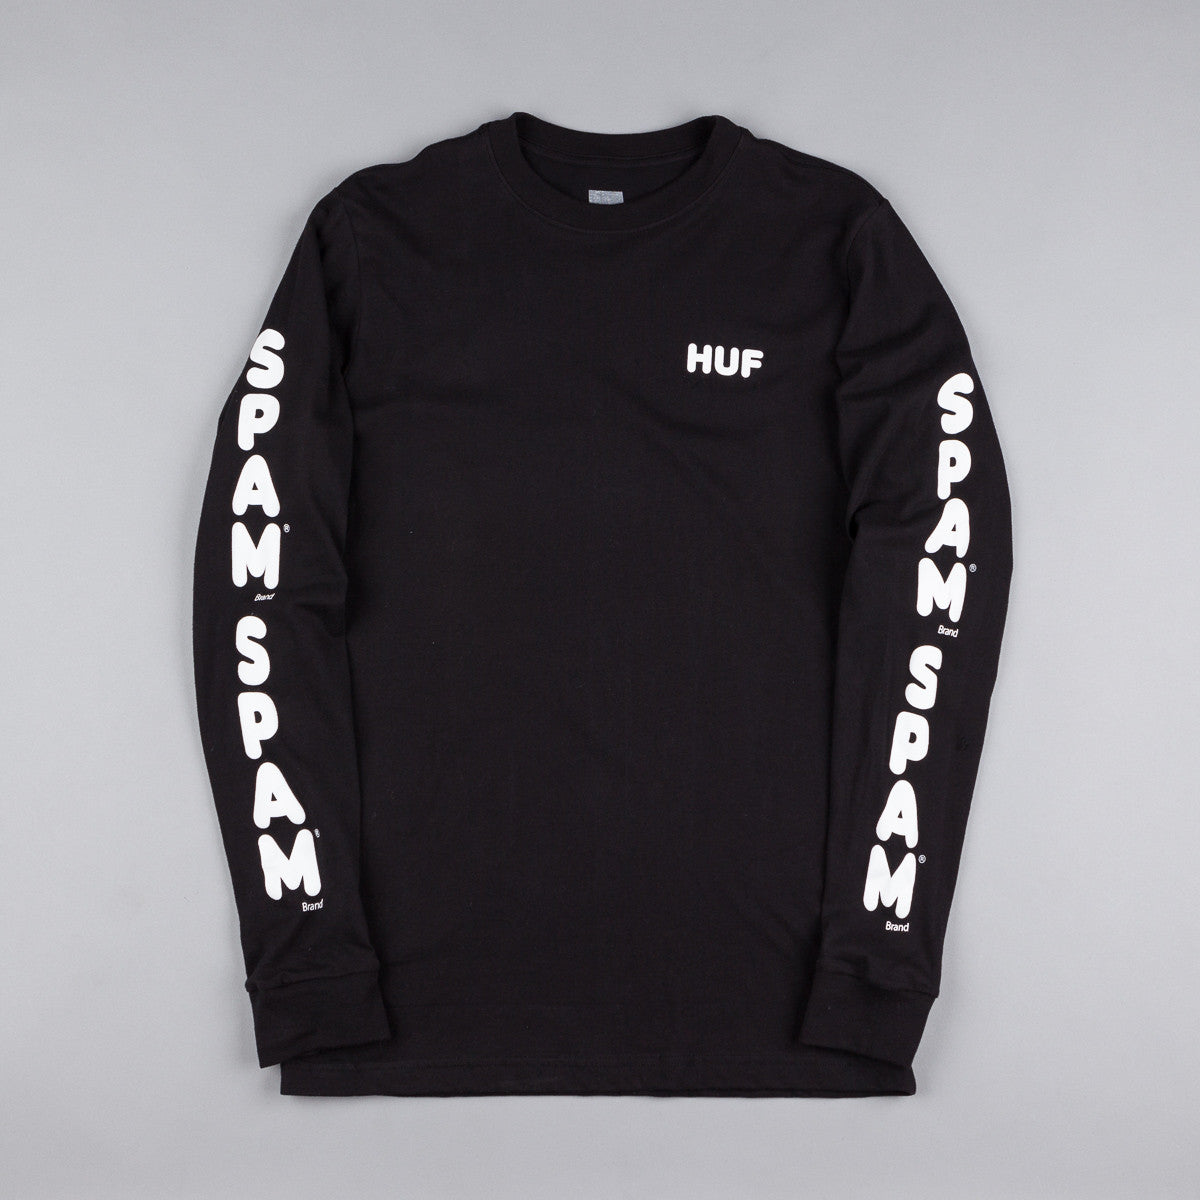 Huf Spam Long Sleeve T-Shirt